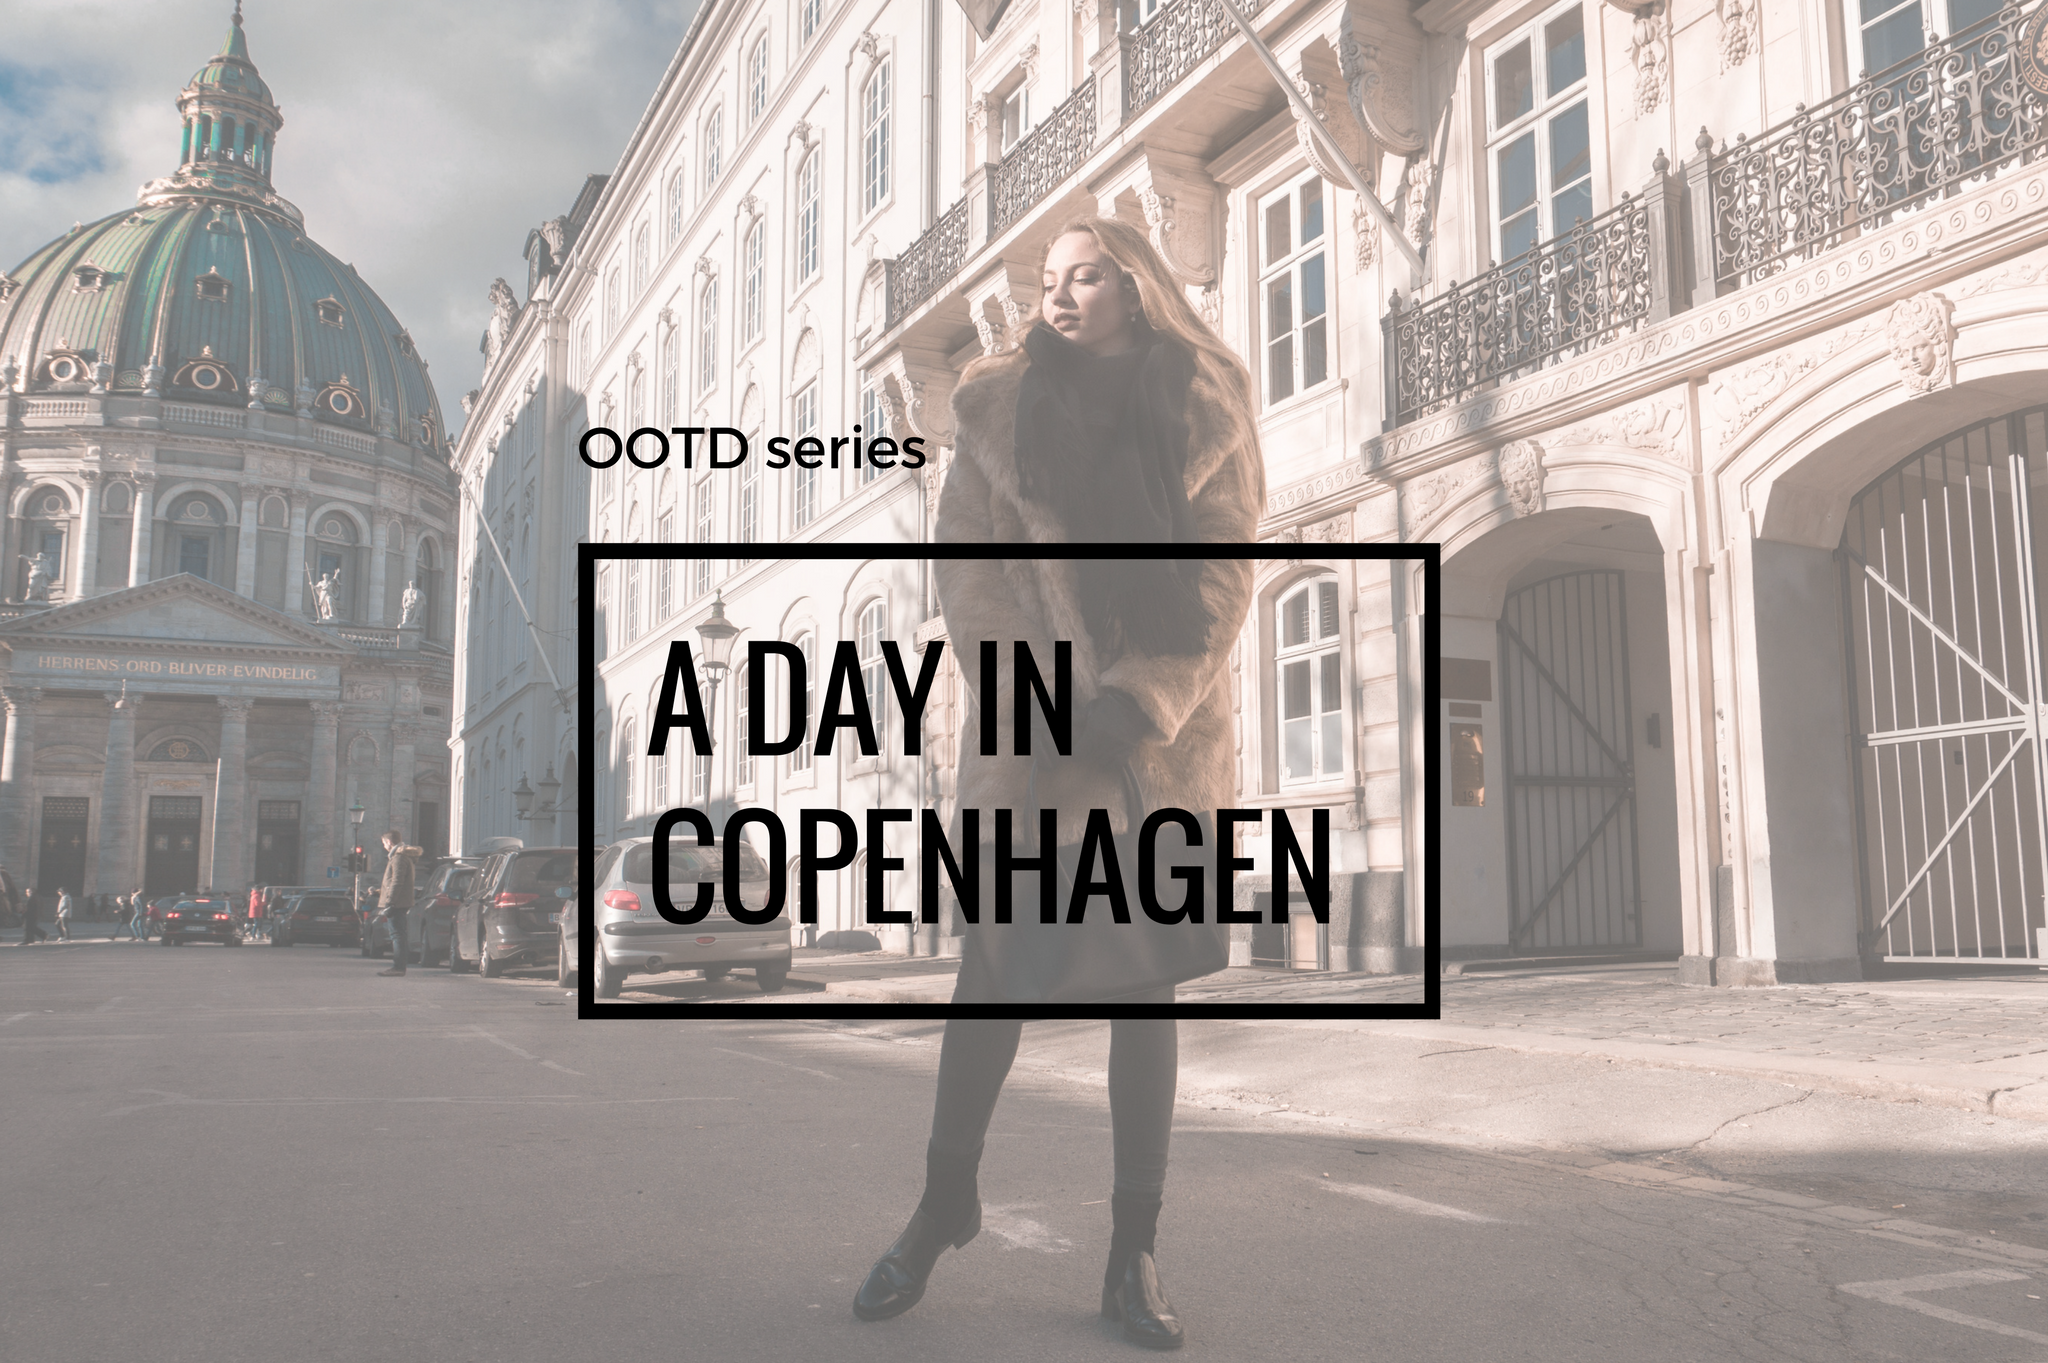 a day in copenhagen